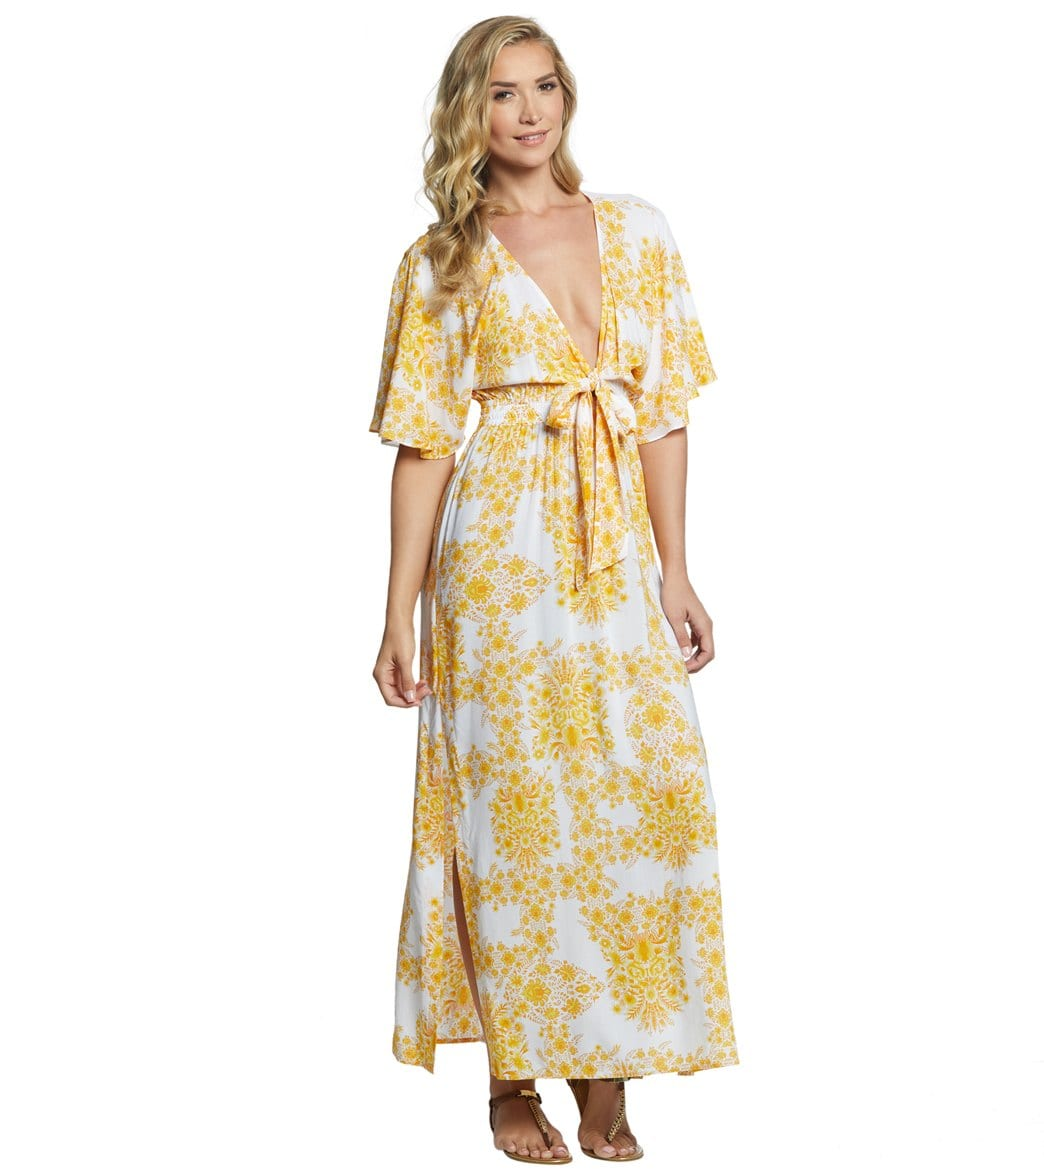 e9d94ce9f5395 Seafolly Sunflower Maxi Dress at SwimOutlet.com - Free Shipping